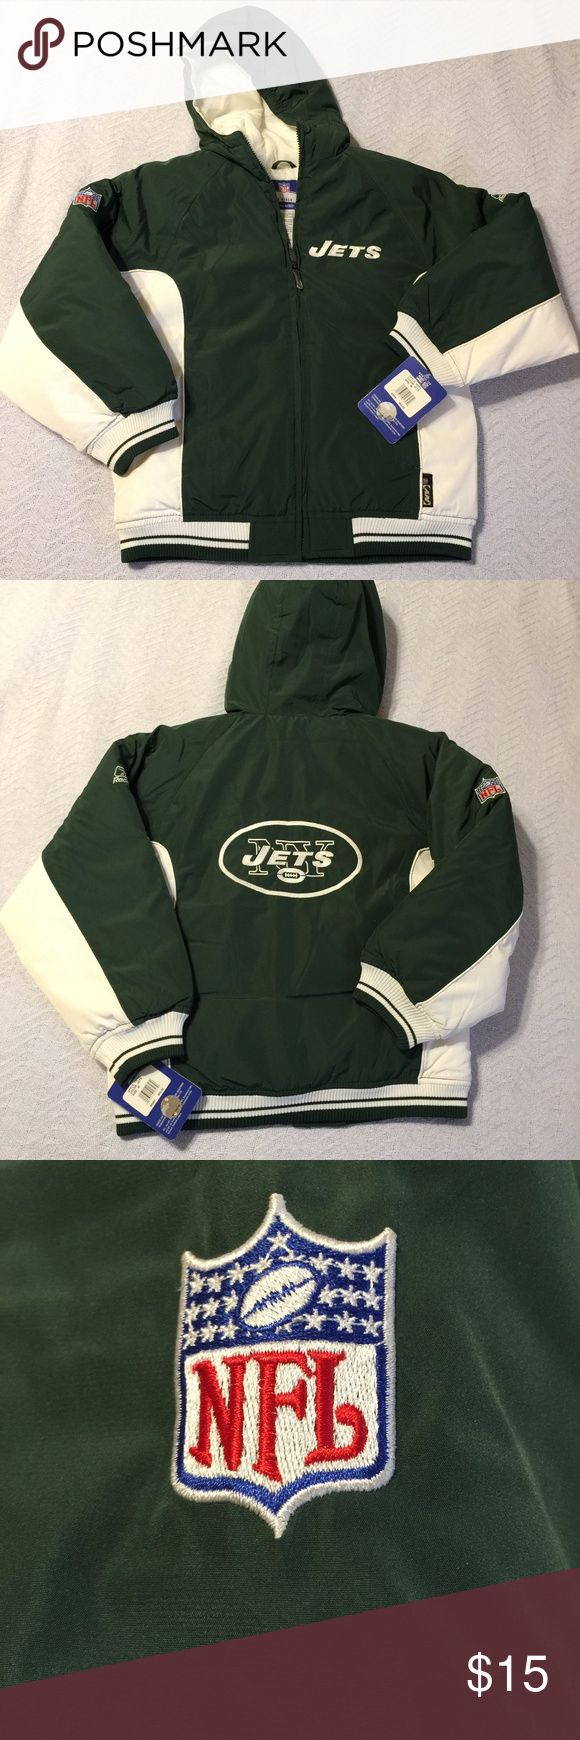 NFL Jets Puffer Jacket NFL Jets Puffer Jacket- Team colors green and white. Great Gift! Has NFL patch on right arm and Reebok patch on left. Tag says size 10-12. New, never worn, NWT Reebok Jackets & Coats Puffers